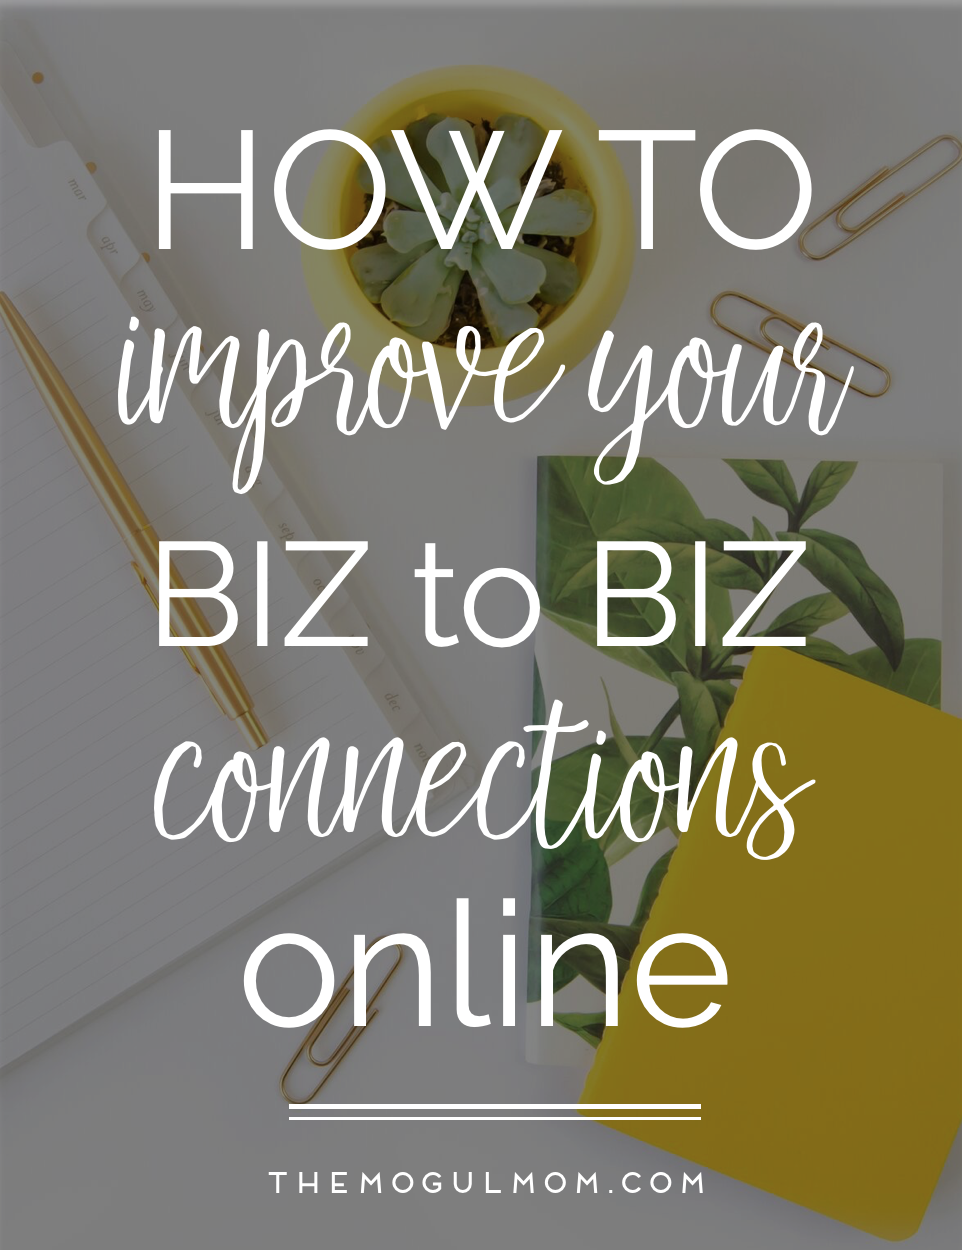 How To Improve B2B Connections Online